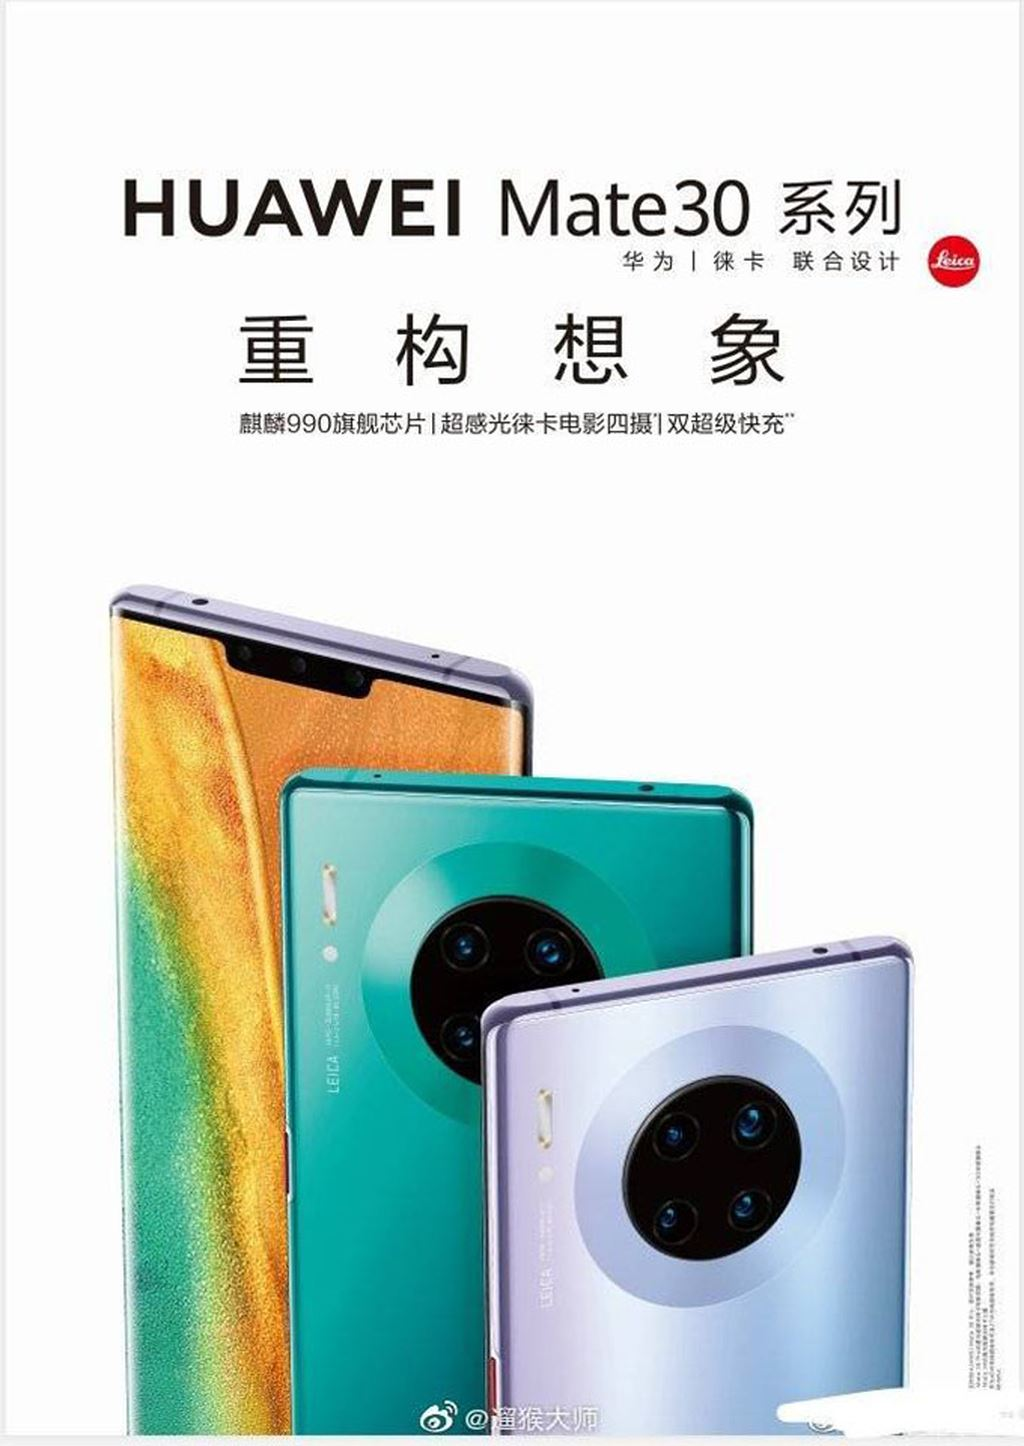 huawei mate 30 poster aupf